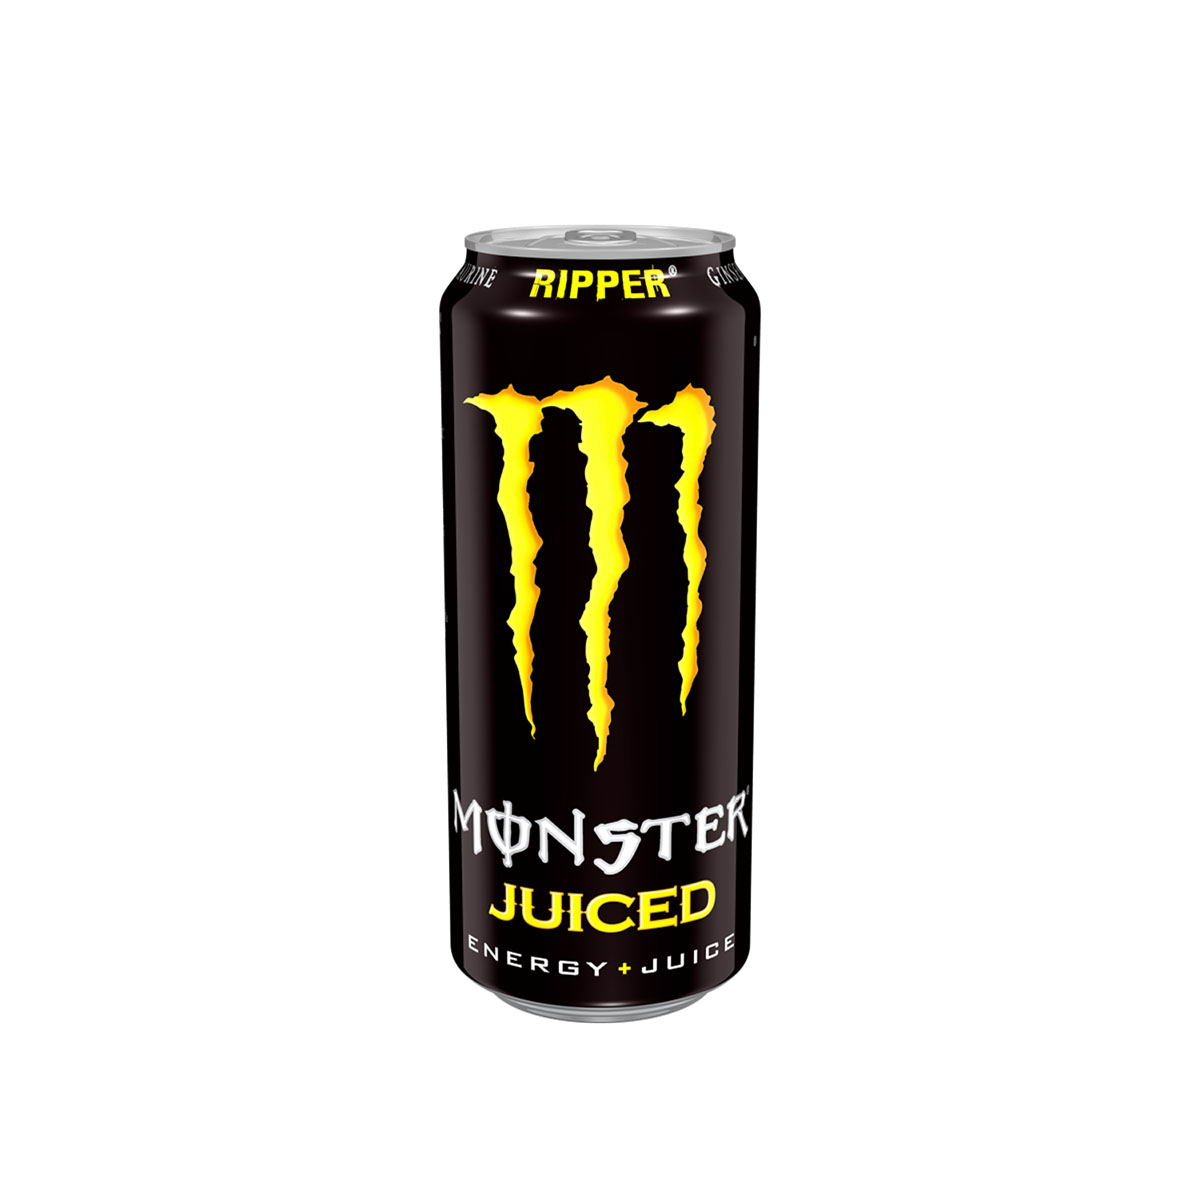 Monster juice Ripper 500ml